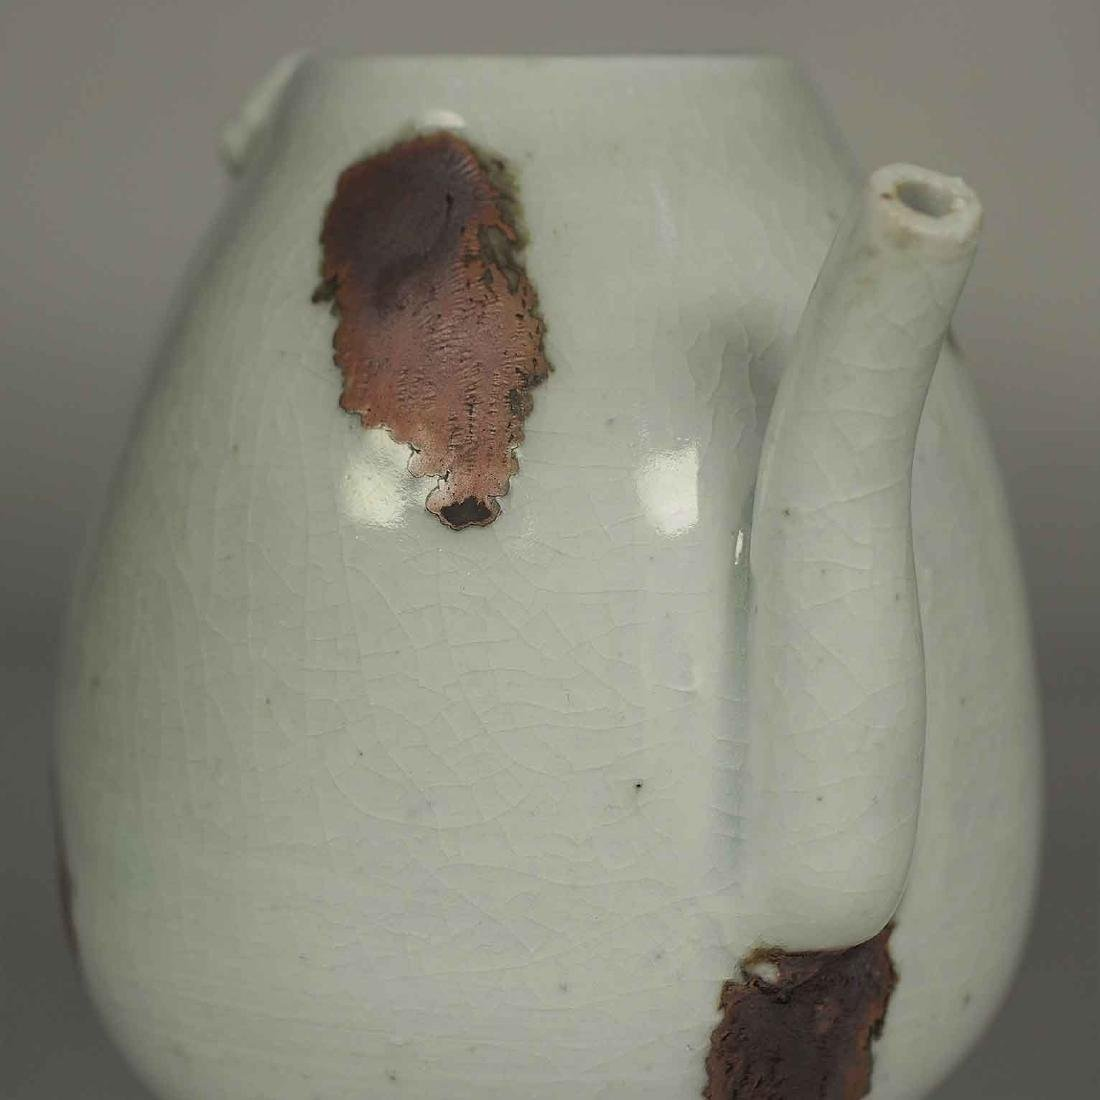 Ewer with Dragon Handle and Brown Spots, Yuan Dynasty - 7